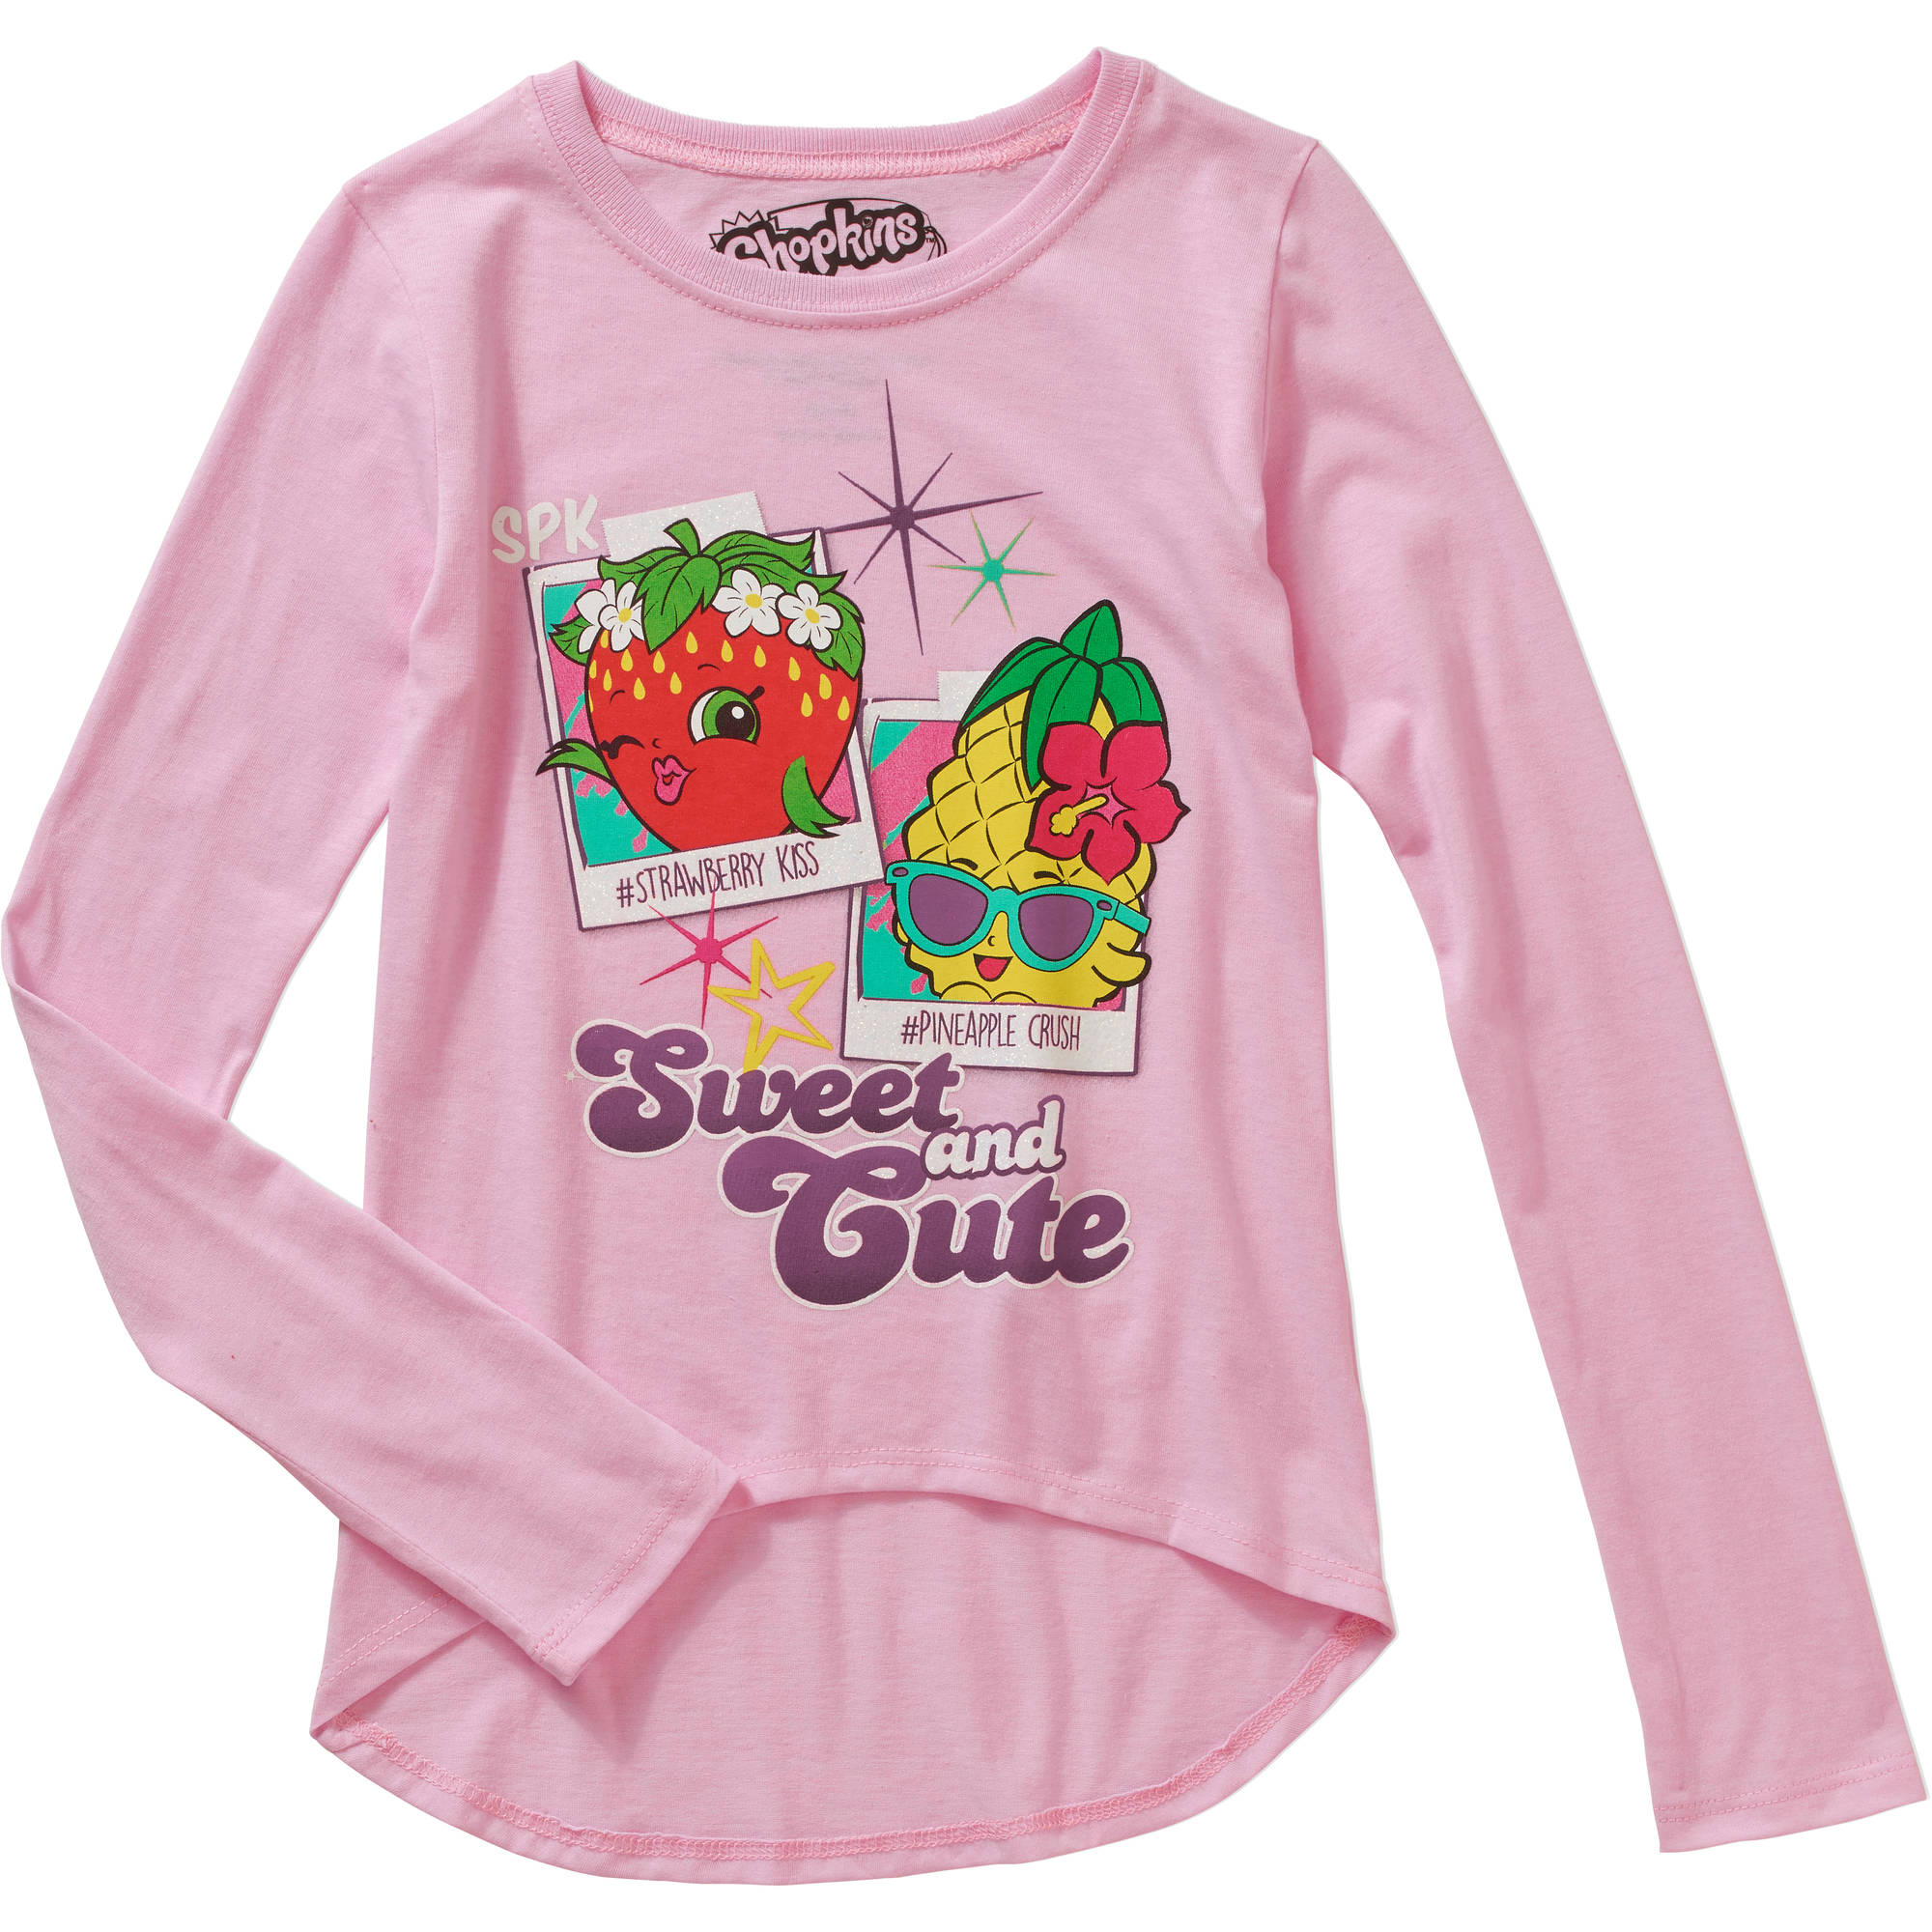 Shopkins Girls' Shopkins Polaroids Long Sleeve Scoop Neck HiLo Graphic Top